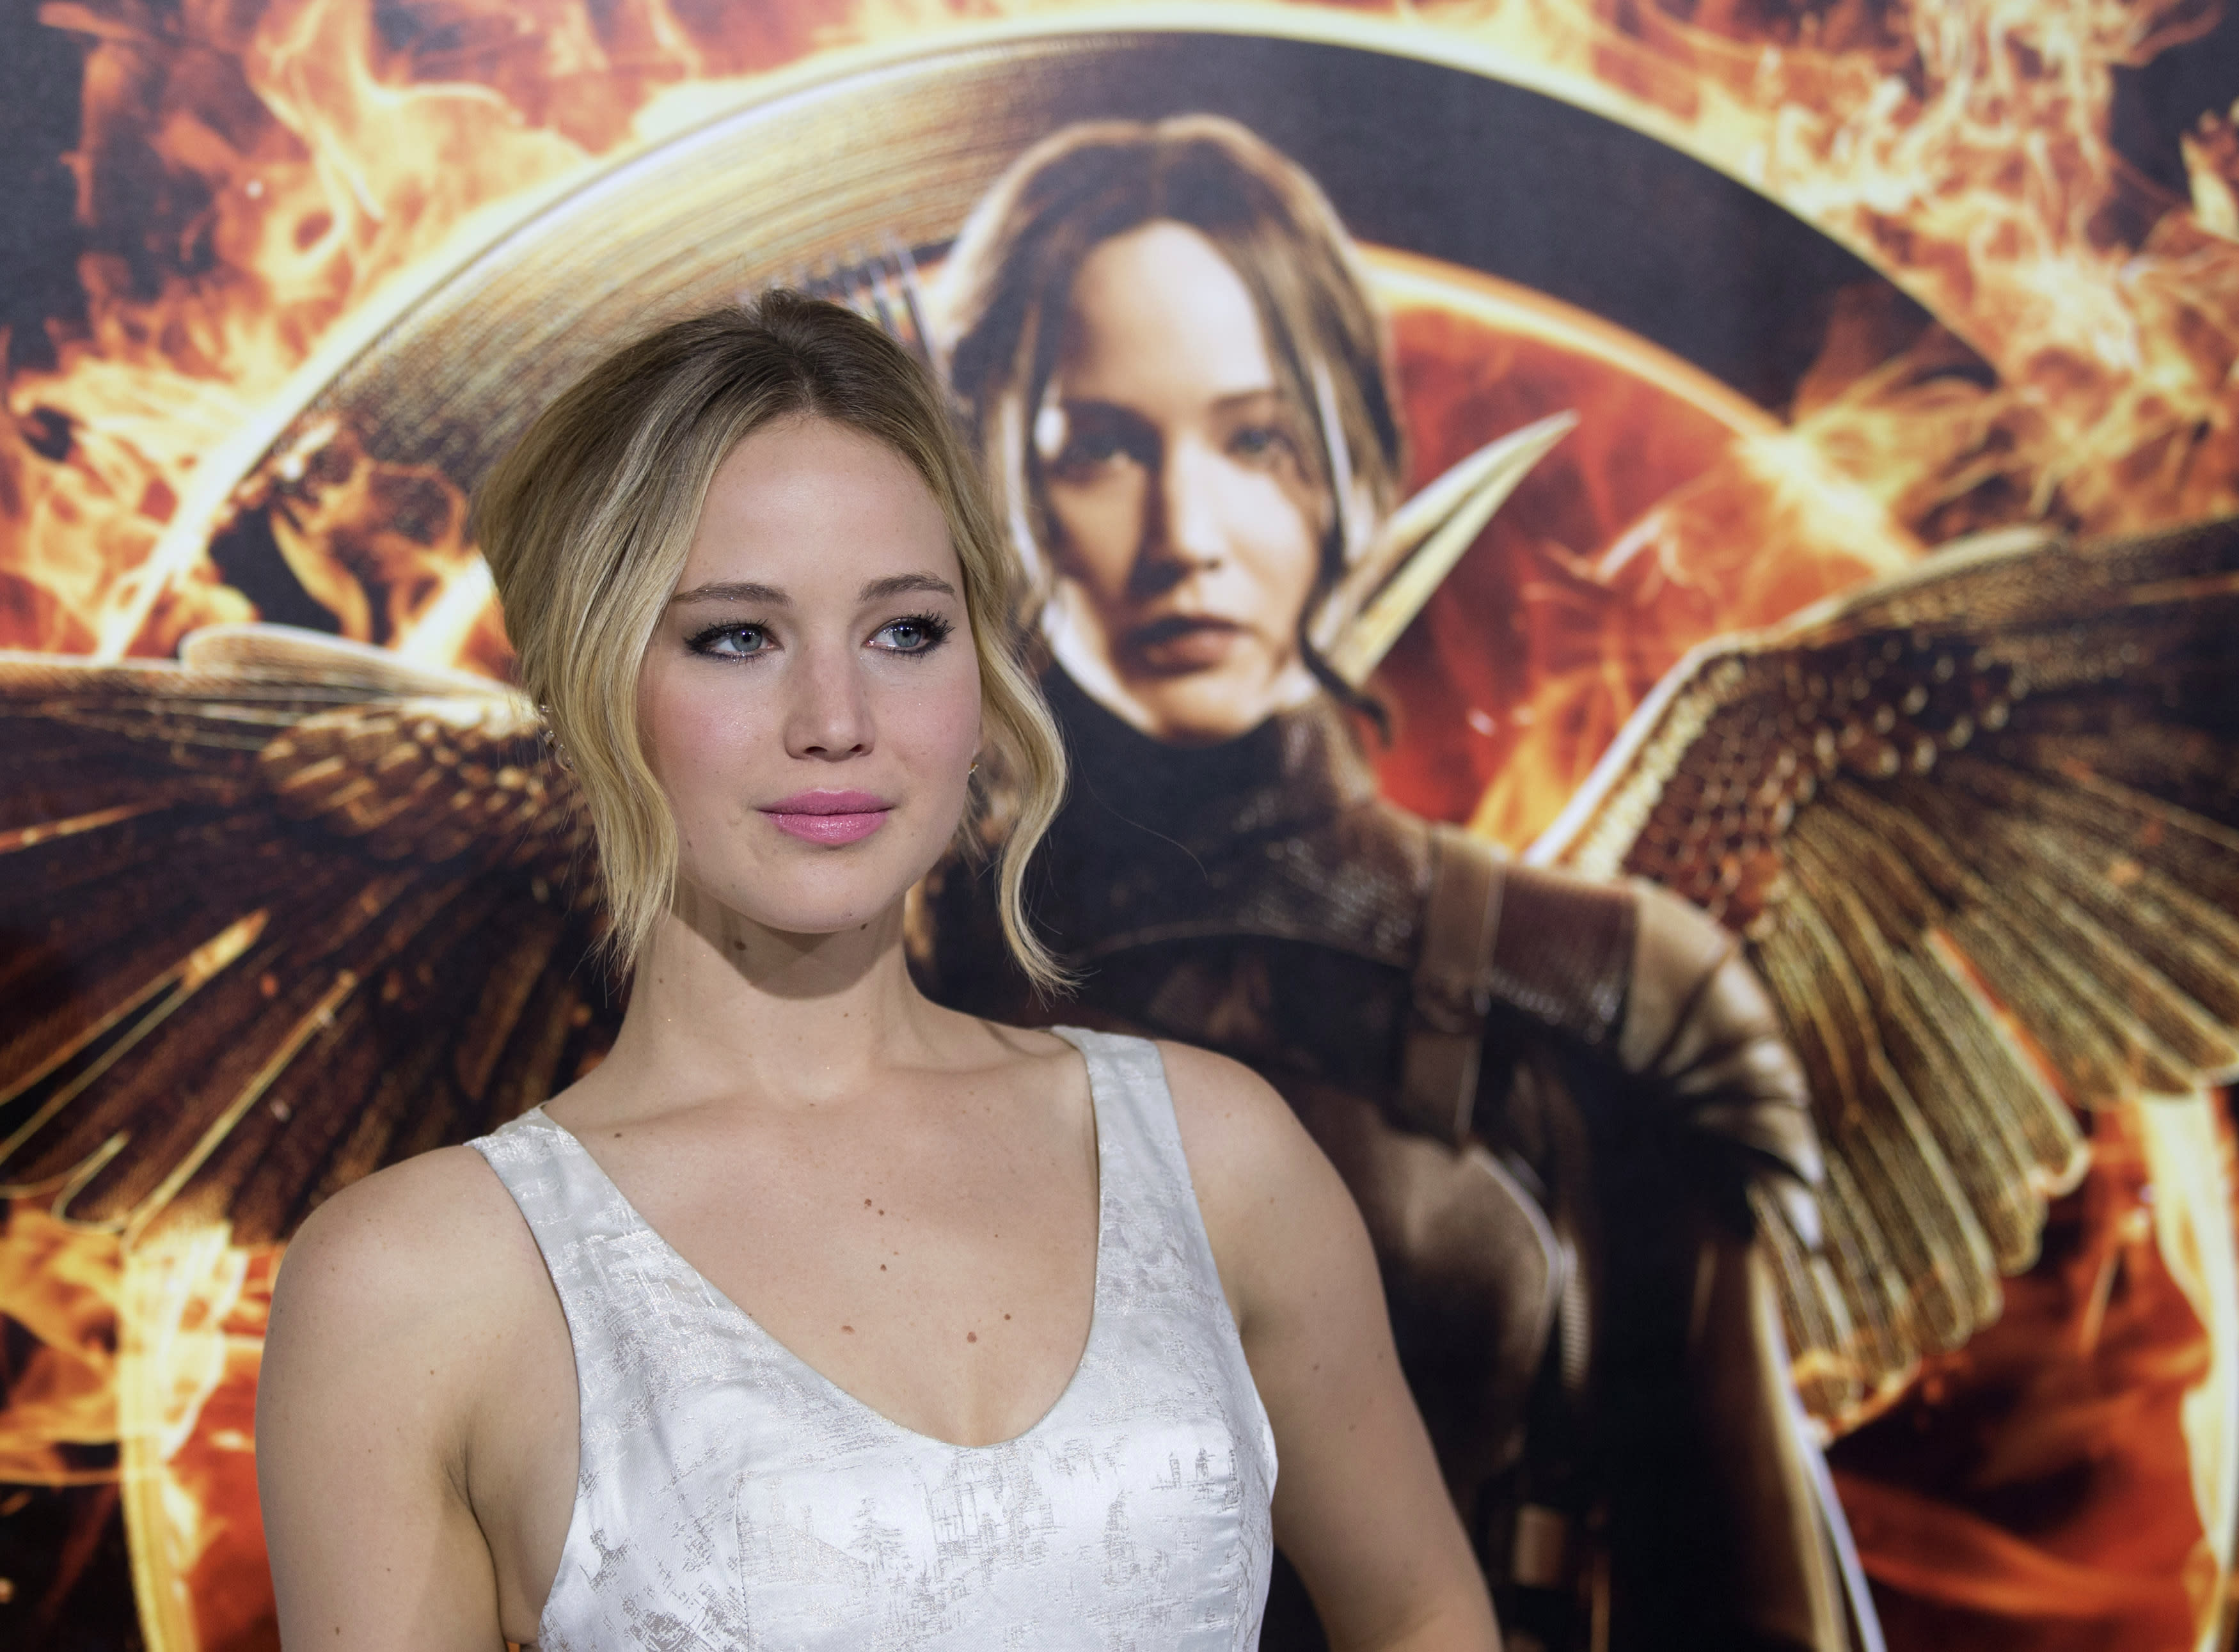 Jennifer Lawrence, Chris Pratt Top Highest-Grossing Actors List